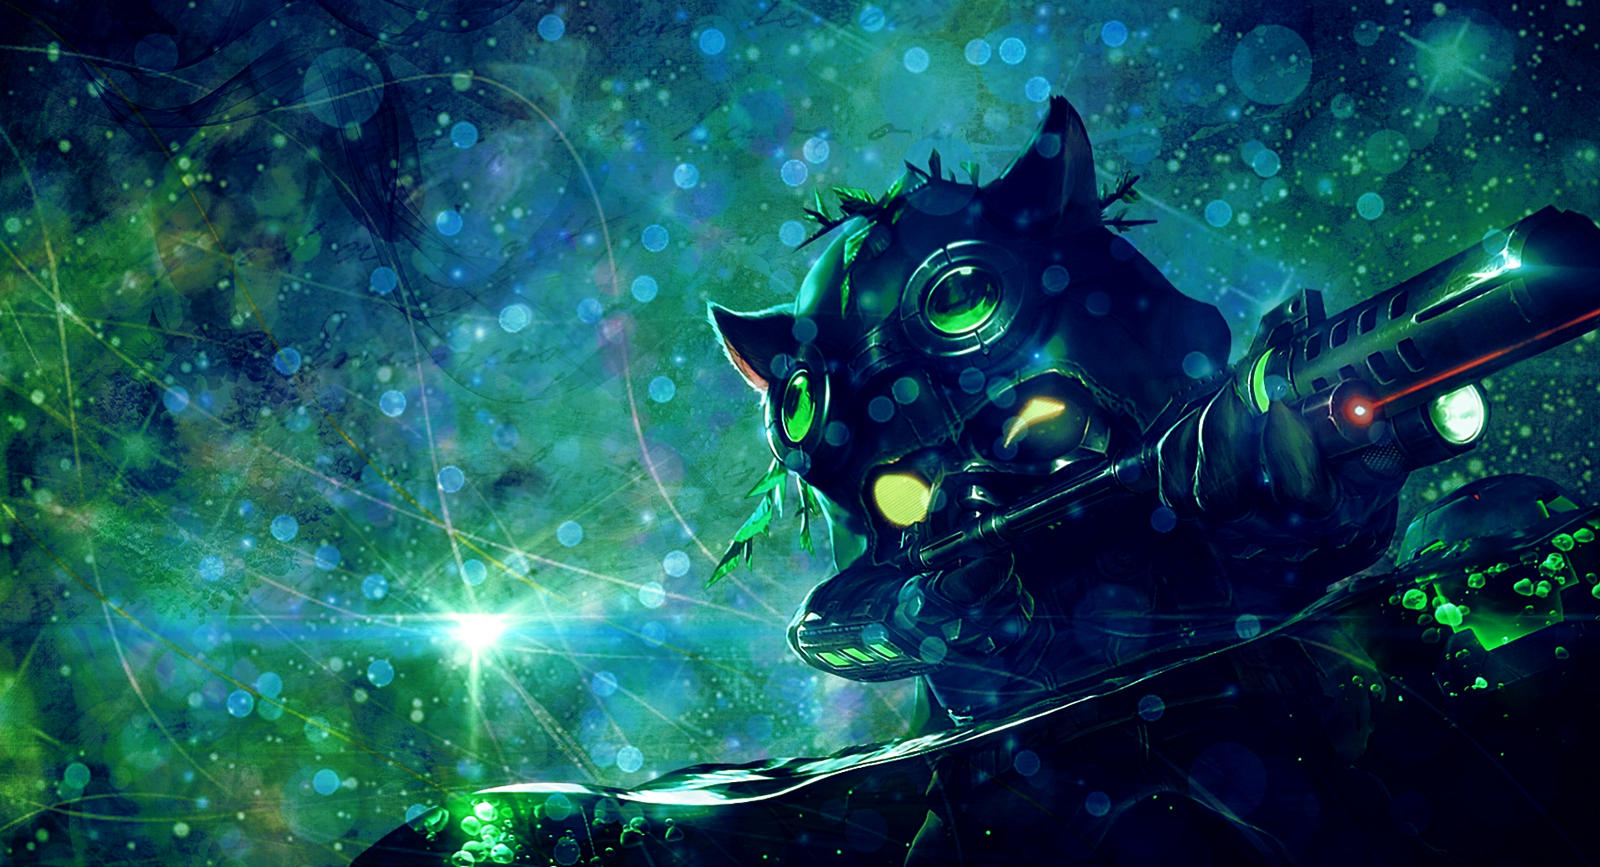 [League of Legends] Omega Squad Teemo (Wallpaper) by ...